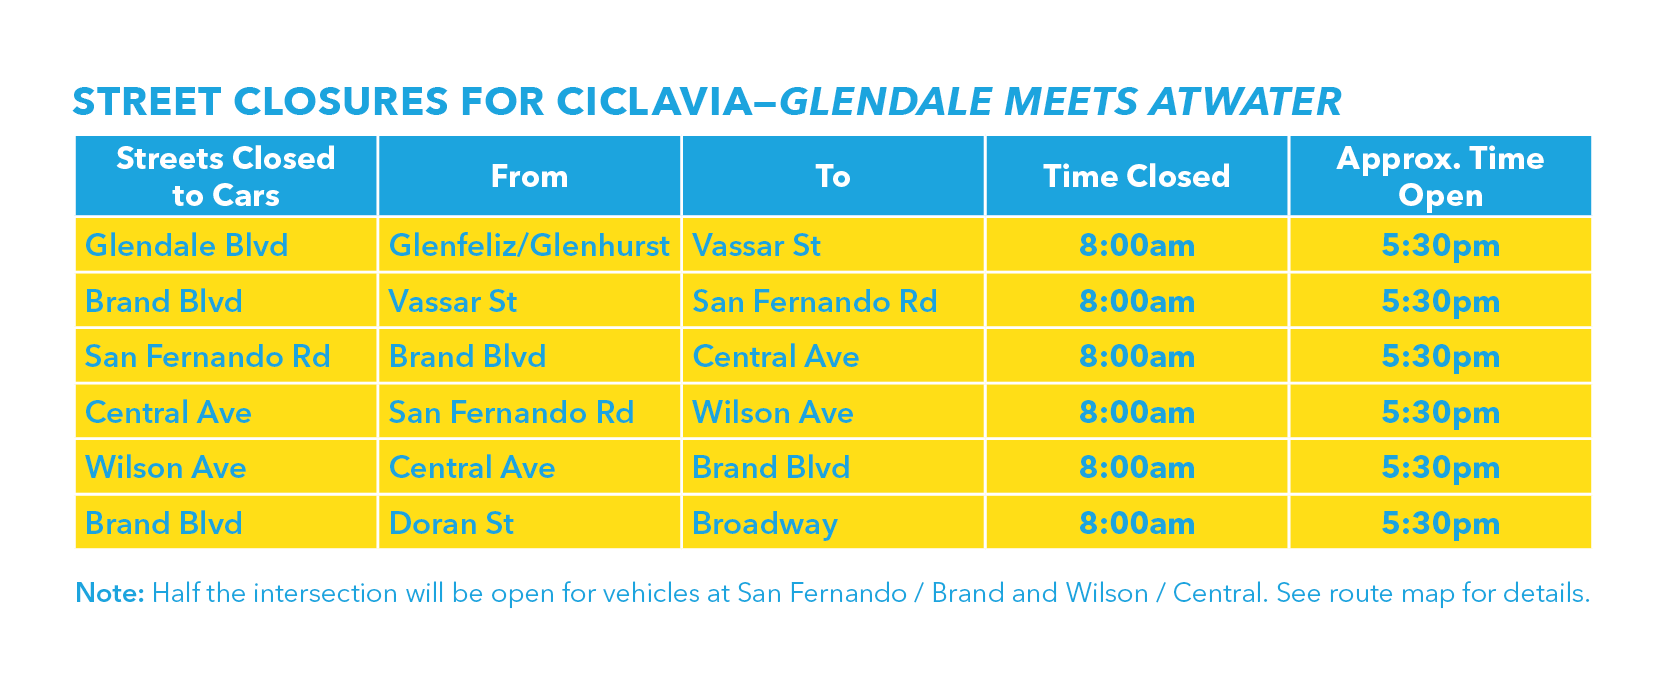 ciclavia_glendale_atwater_061117_closure_grid_3.png